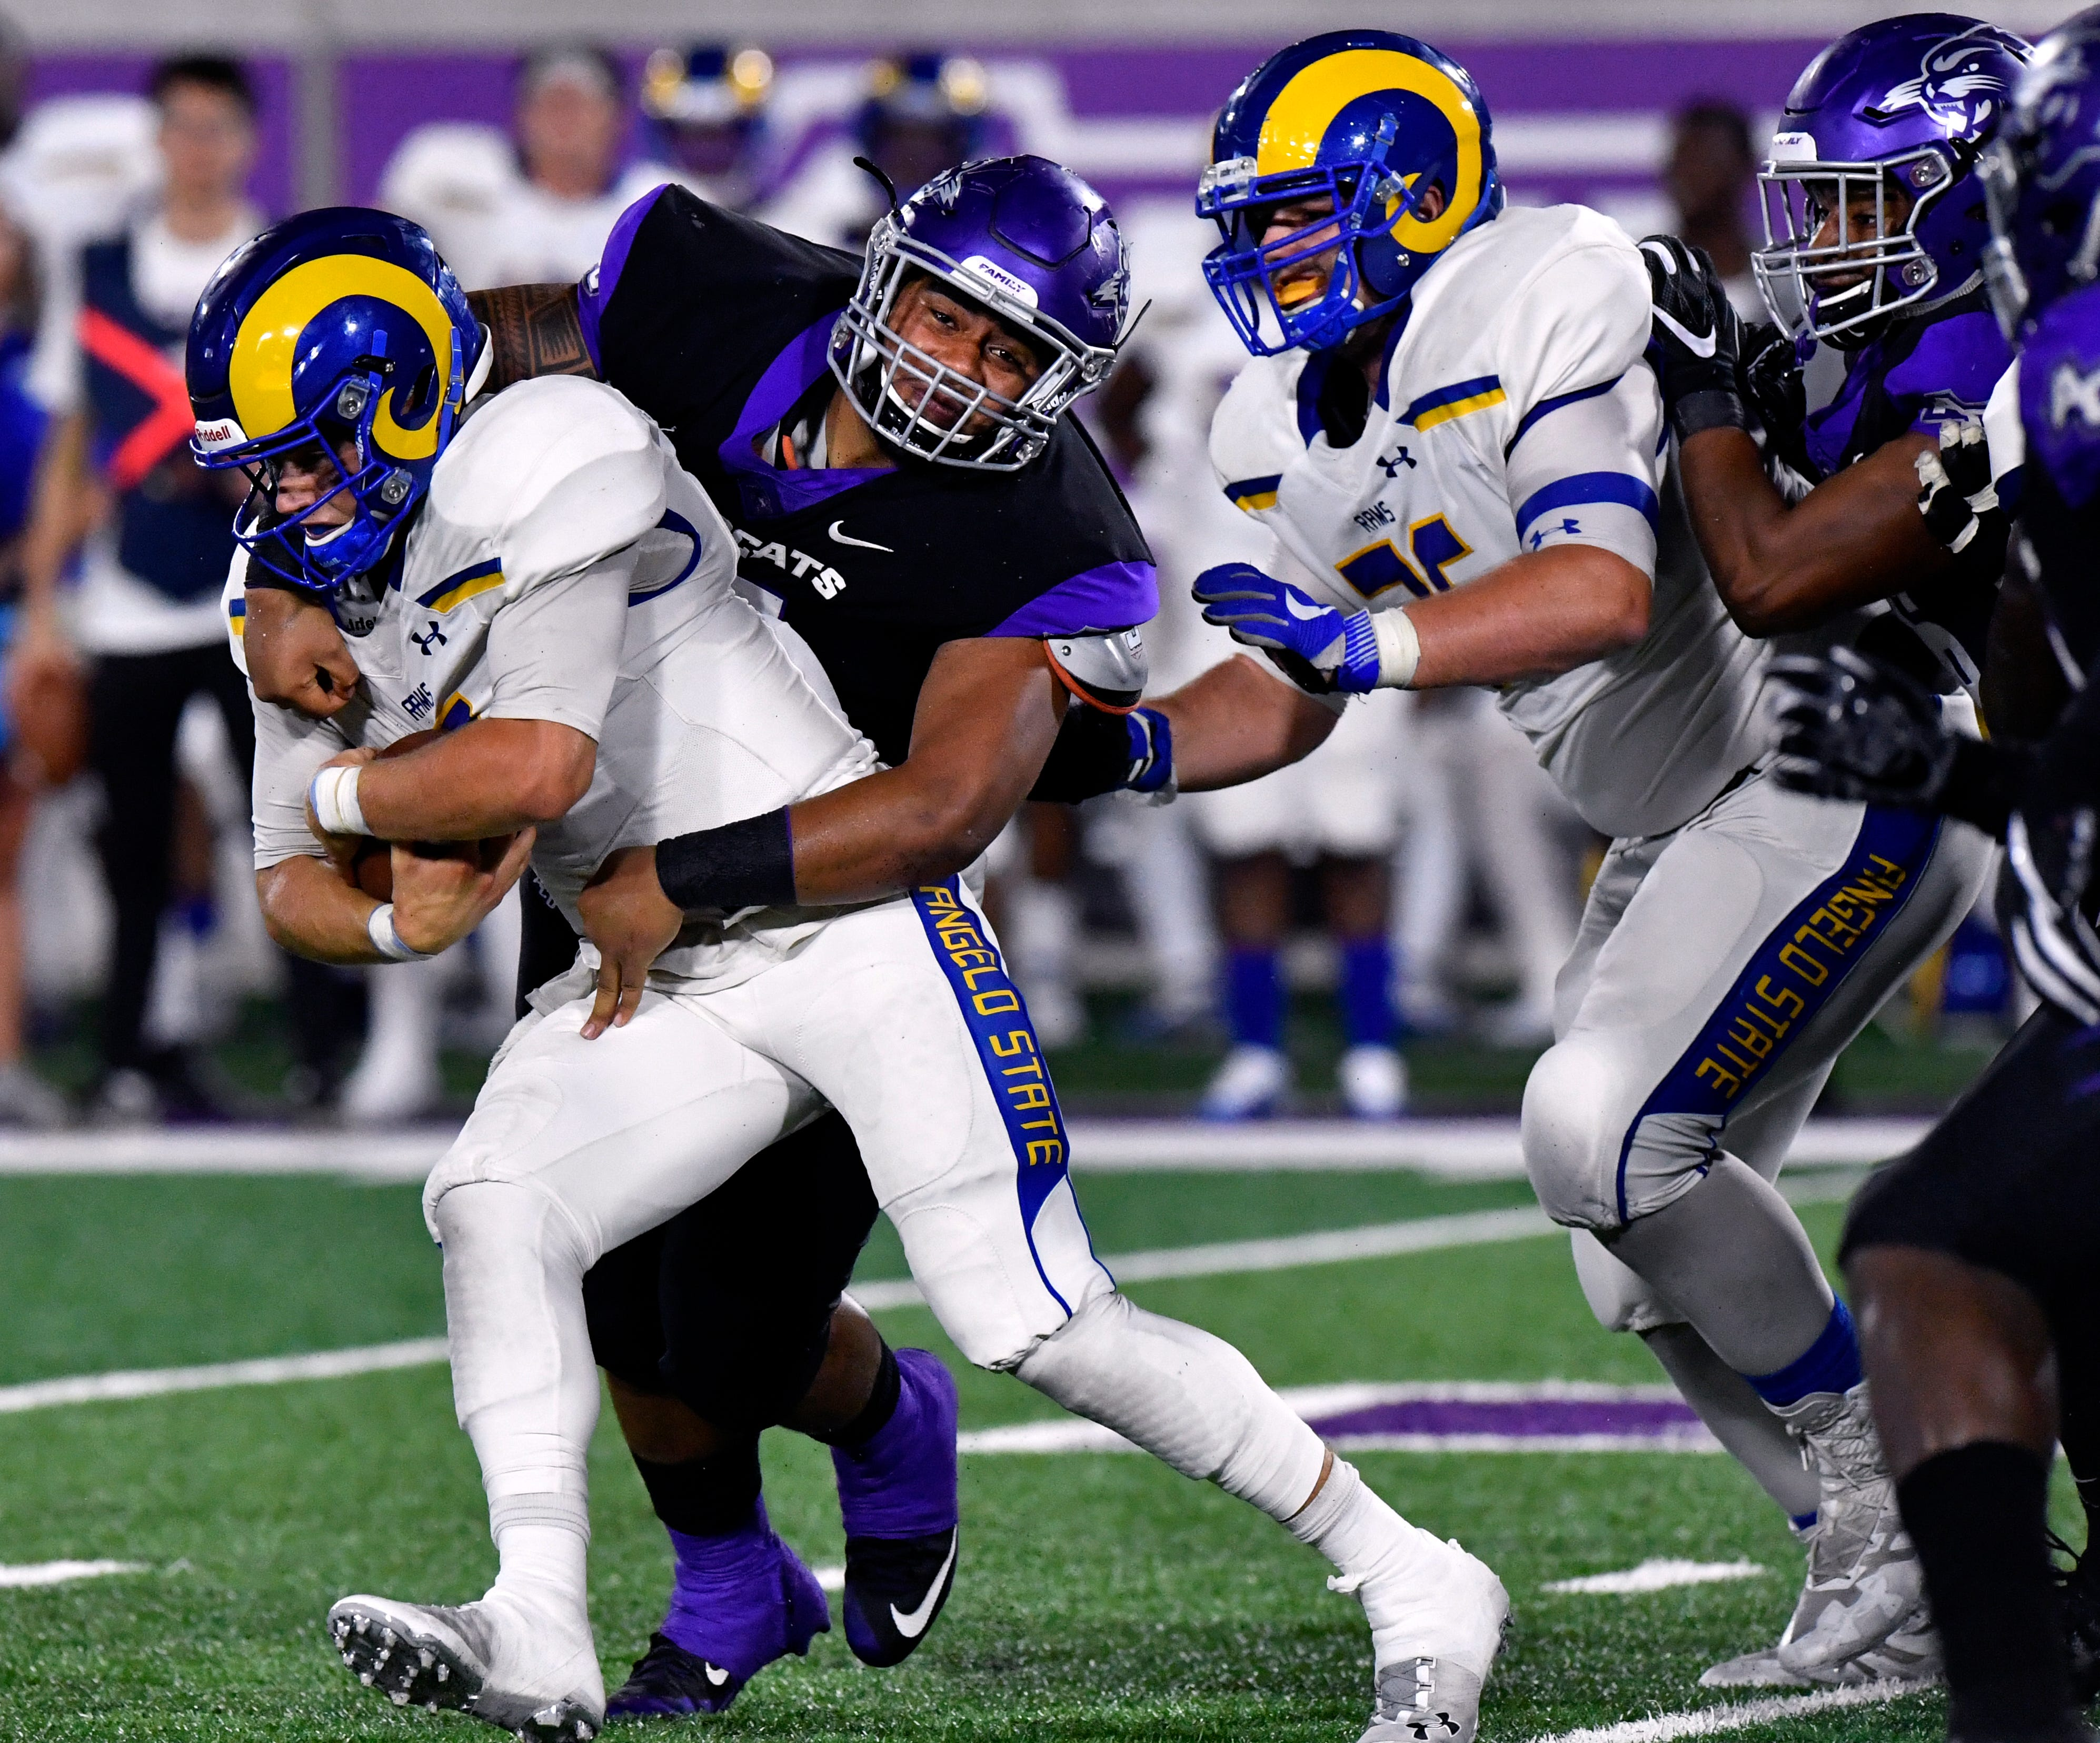 Abilene Christian defensive tackle Makoni Pole sacks Angelo State quarterback Charlie Rotherman during Saturday's game at Wildcat Stadium on Sept. 8, 2018. The Wildcats held off the Rams 41-24.